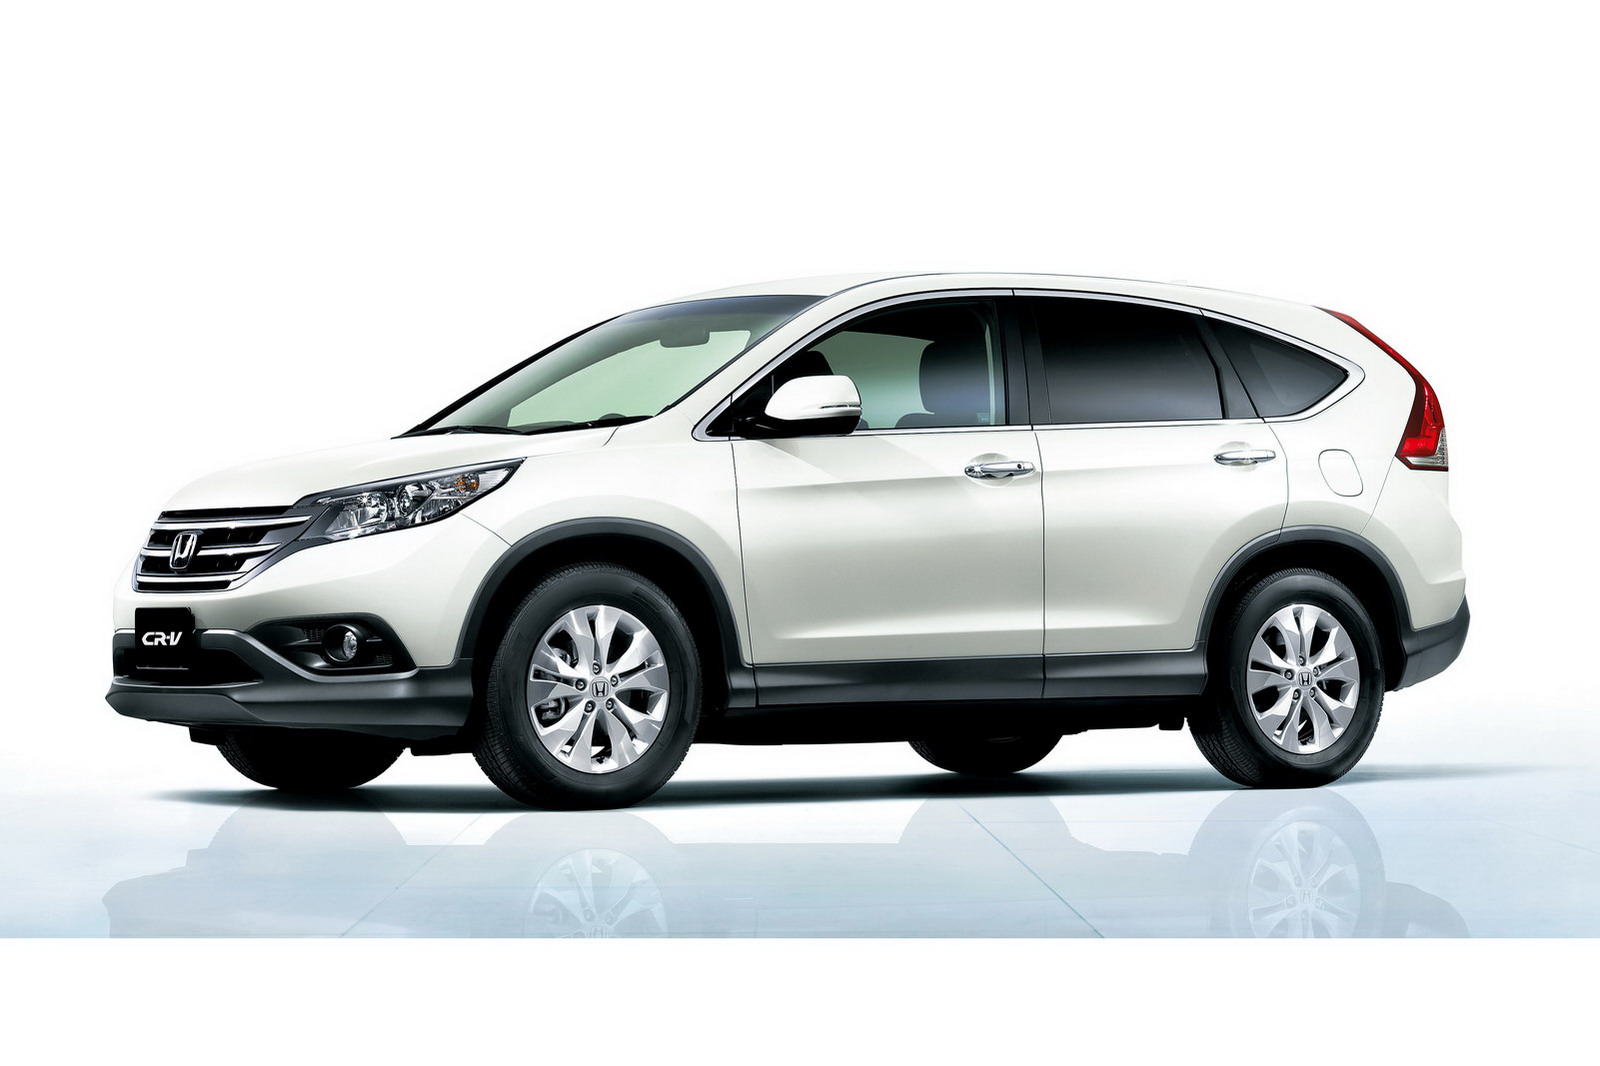 2012 honda cr v information and photos zombiedrive. Black Bedroom Furniture Sets. Home Design Ideas